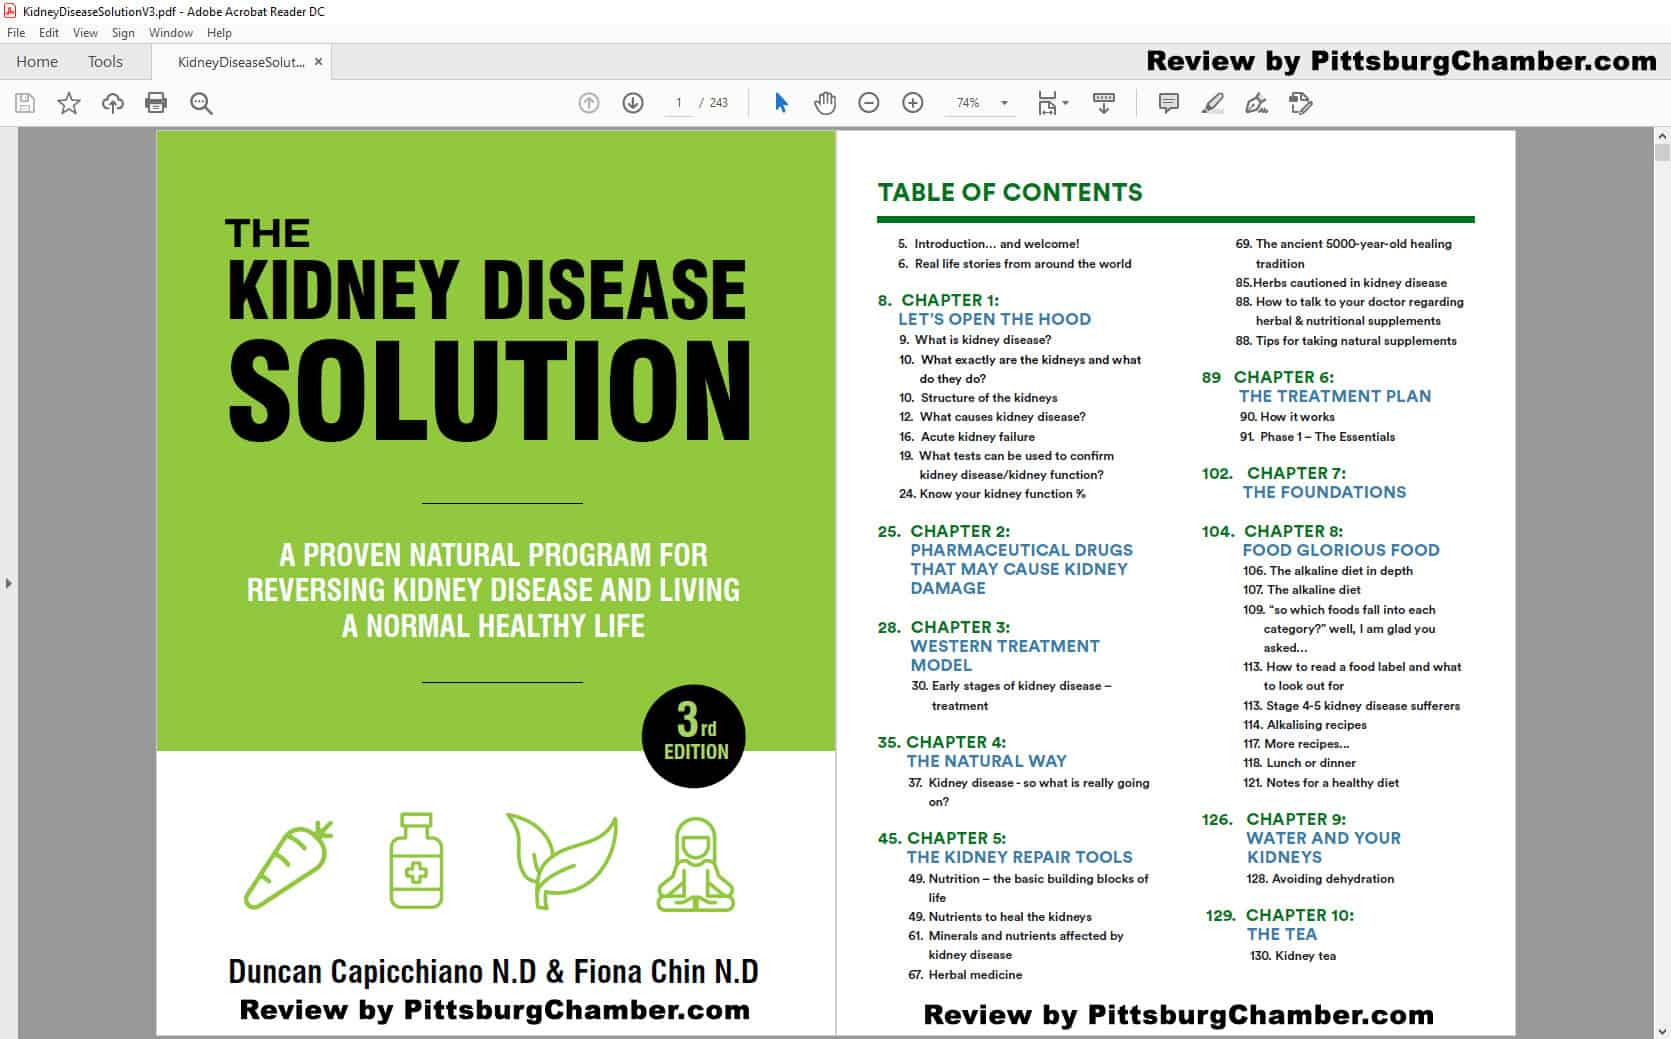 The Kidney Disease Solution Table of Contents